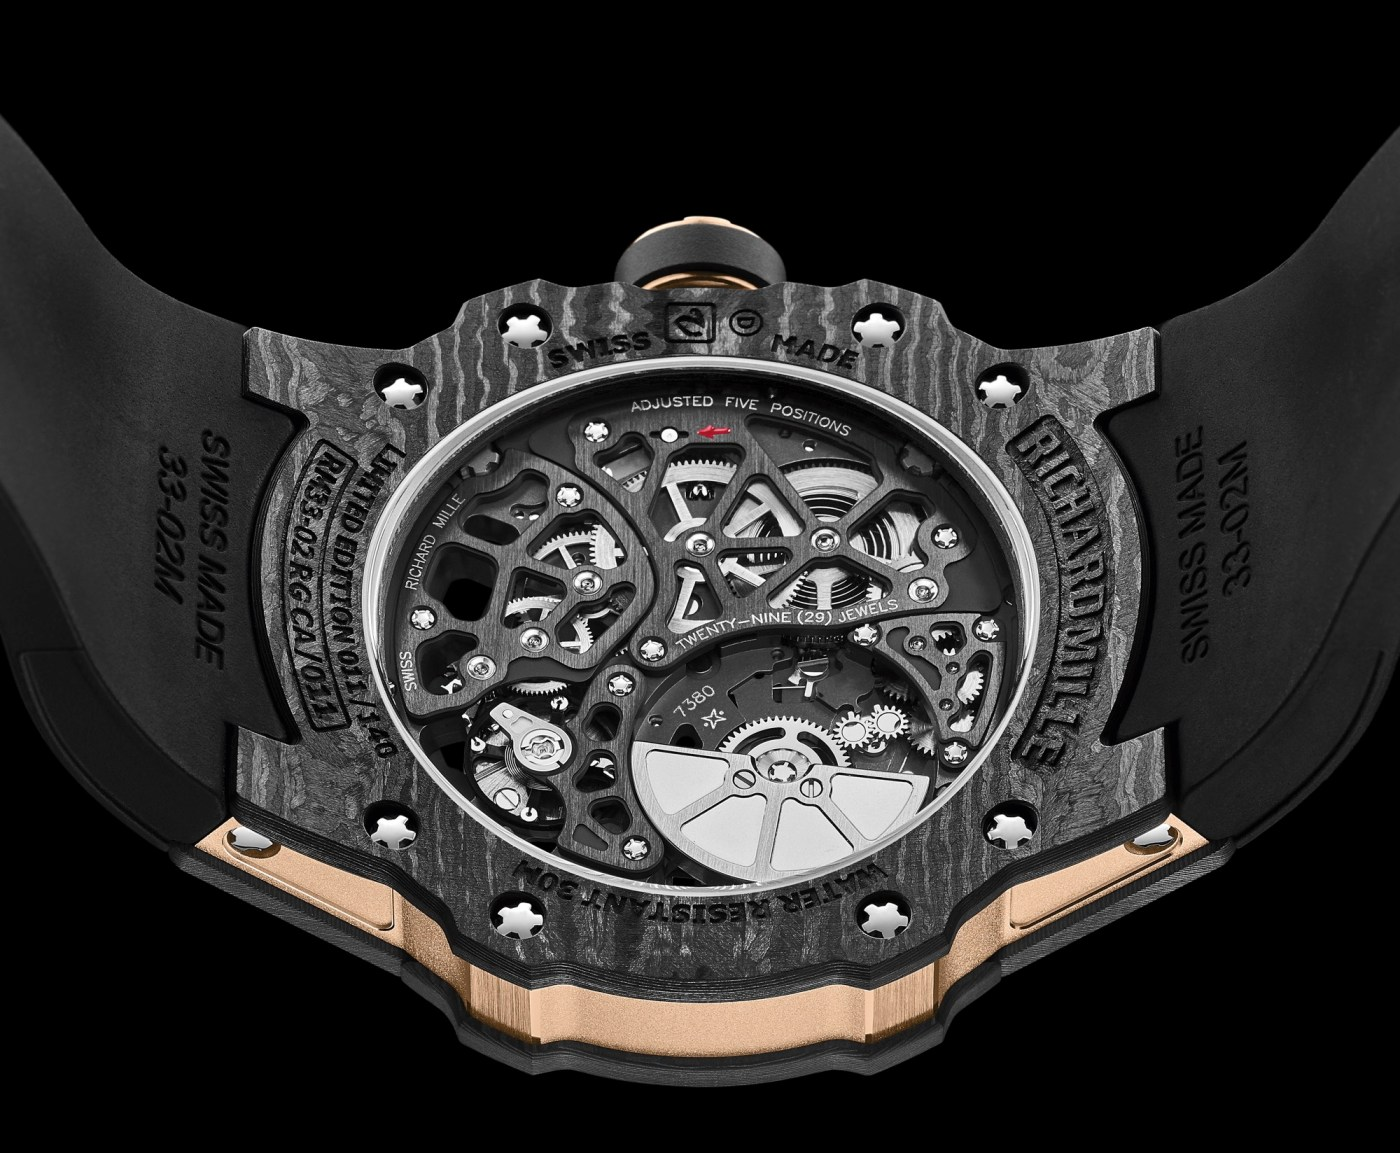 Richard Mille RM 33-02 Automatic caseback